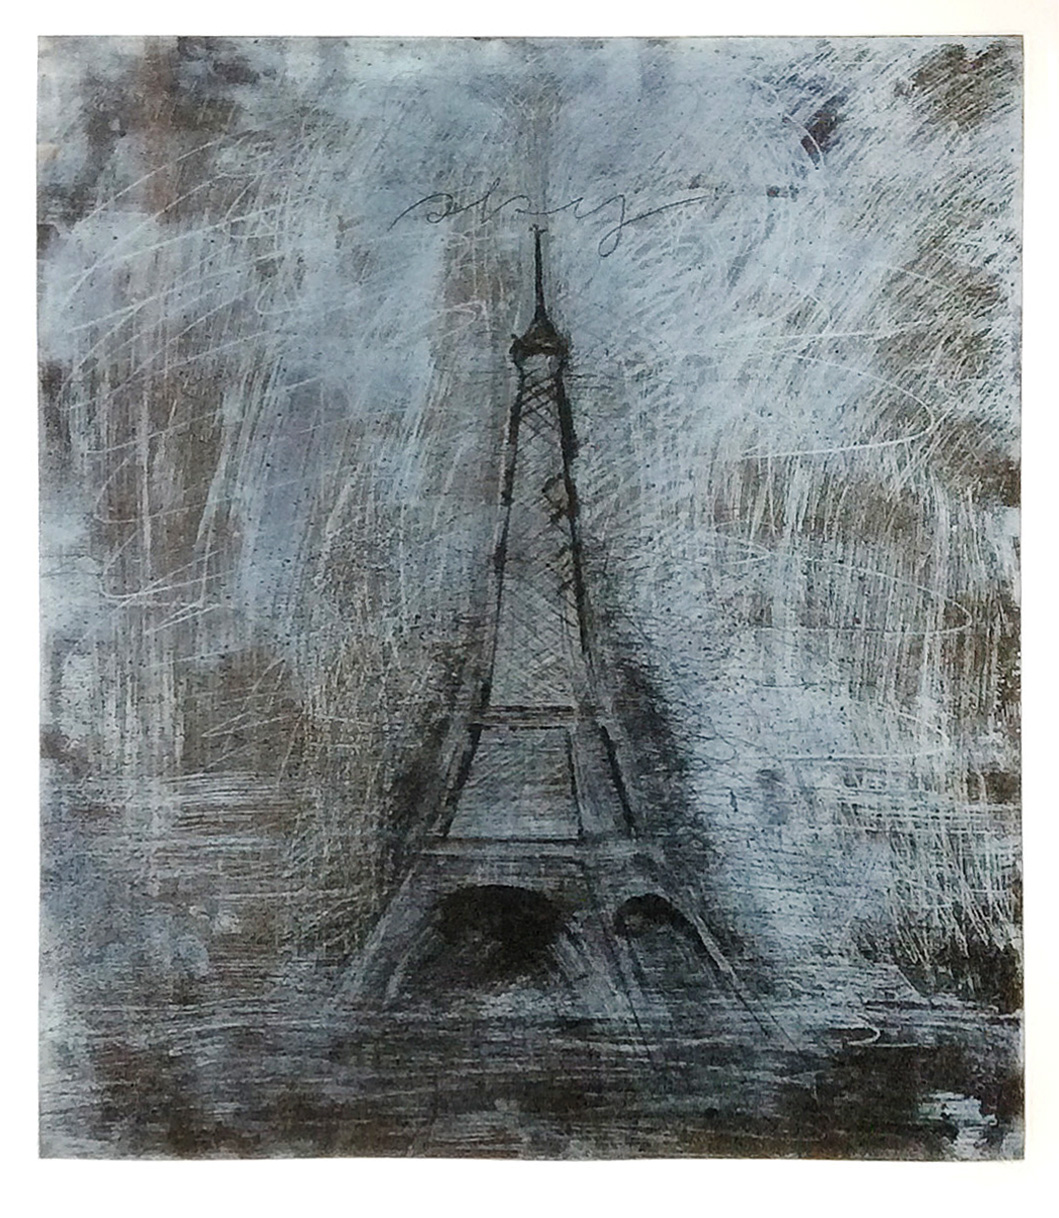 Jim Dine, Eiffel Tower, Etching, Collection of Michael Dickter and Nancy Whittaker